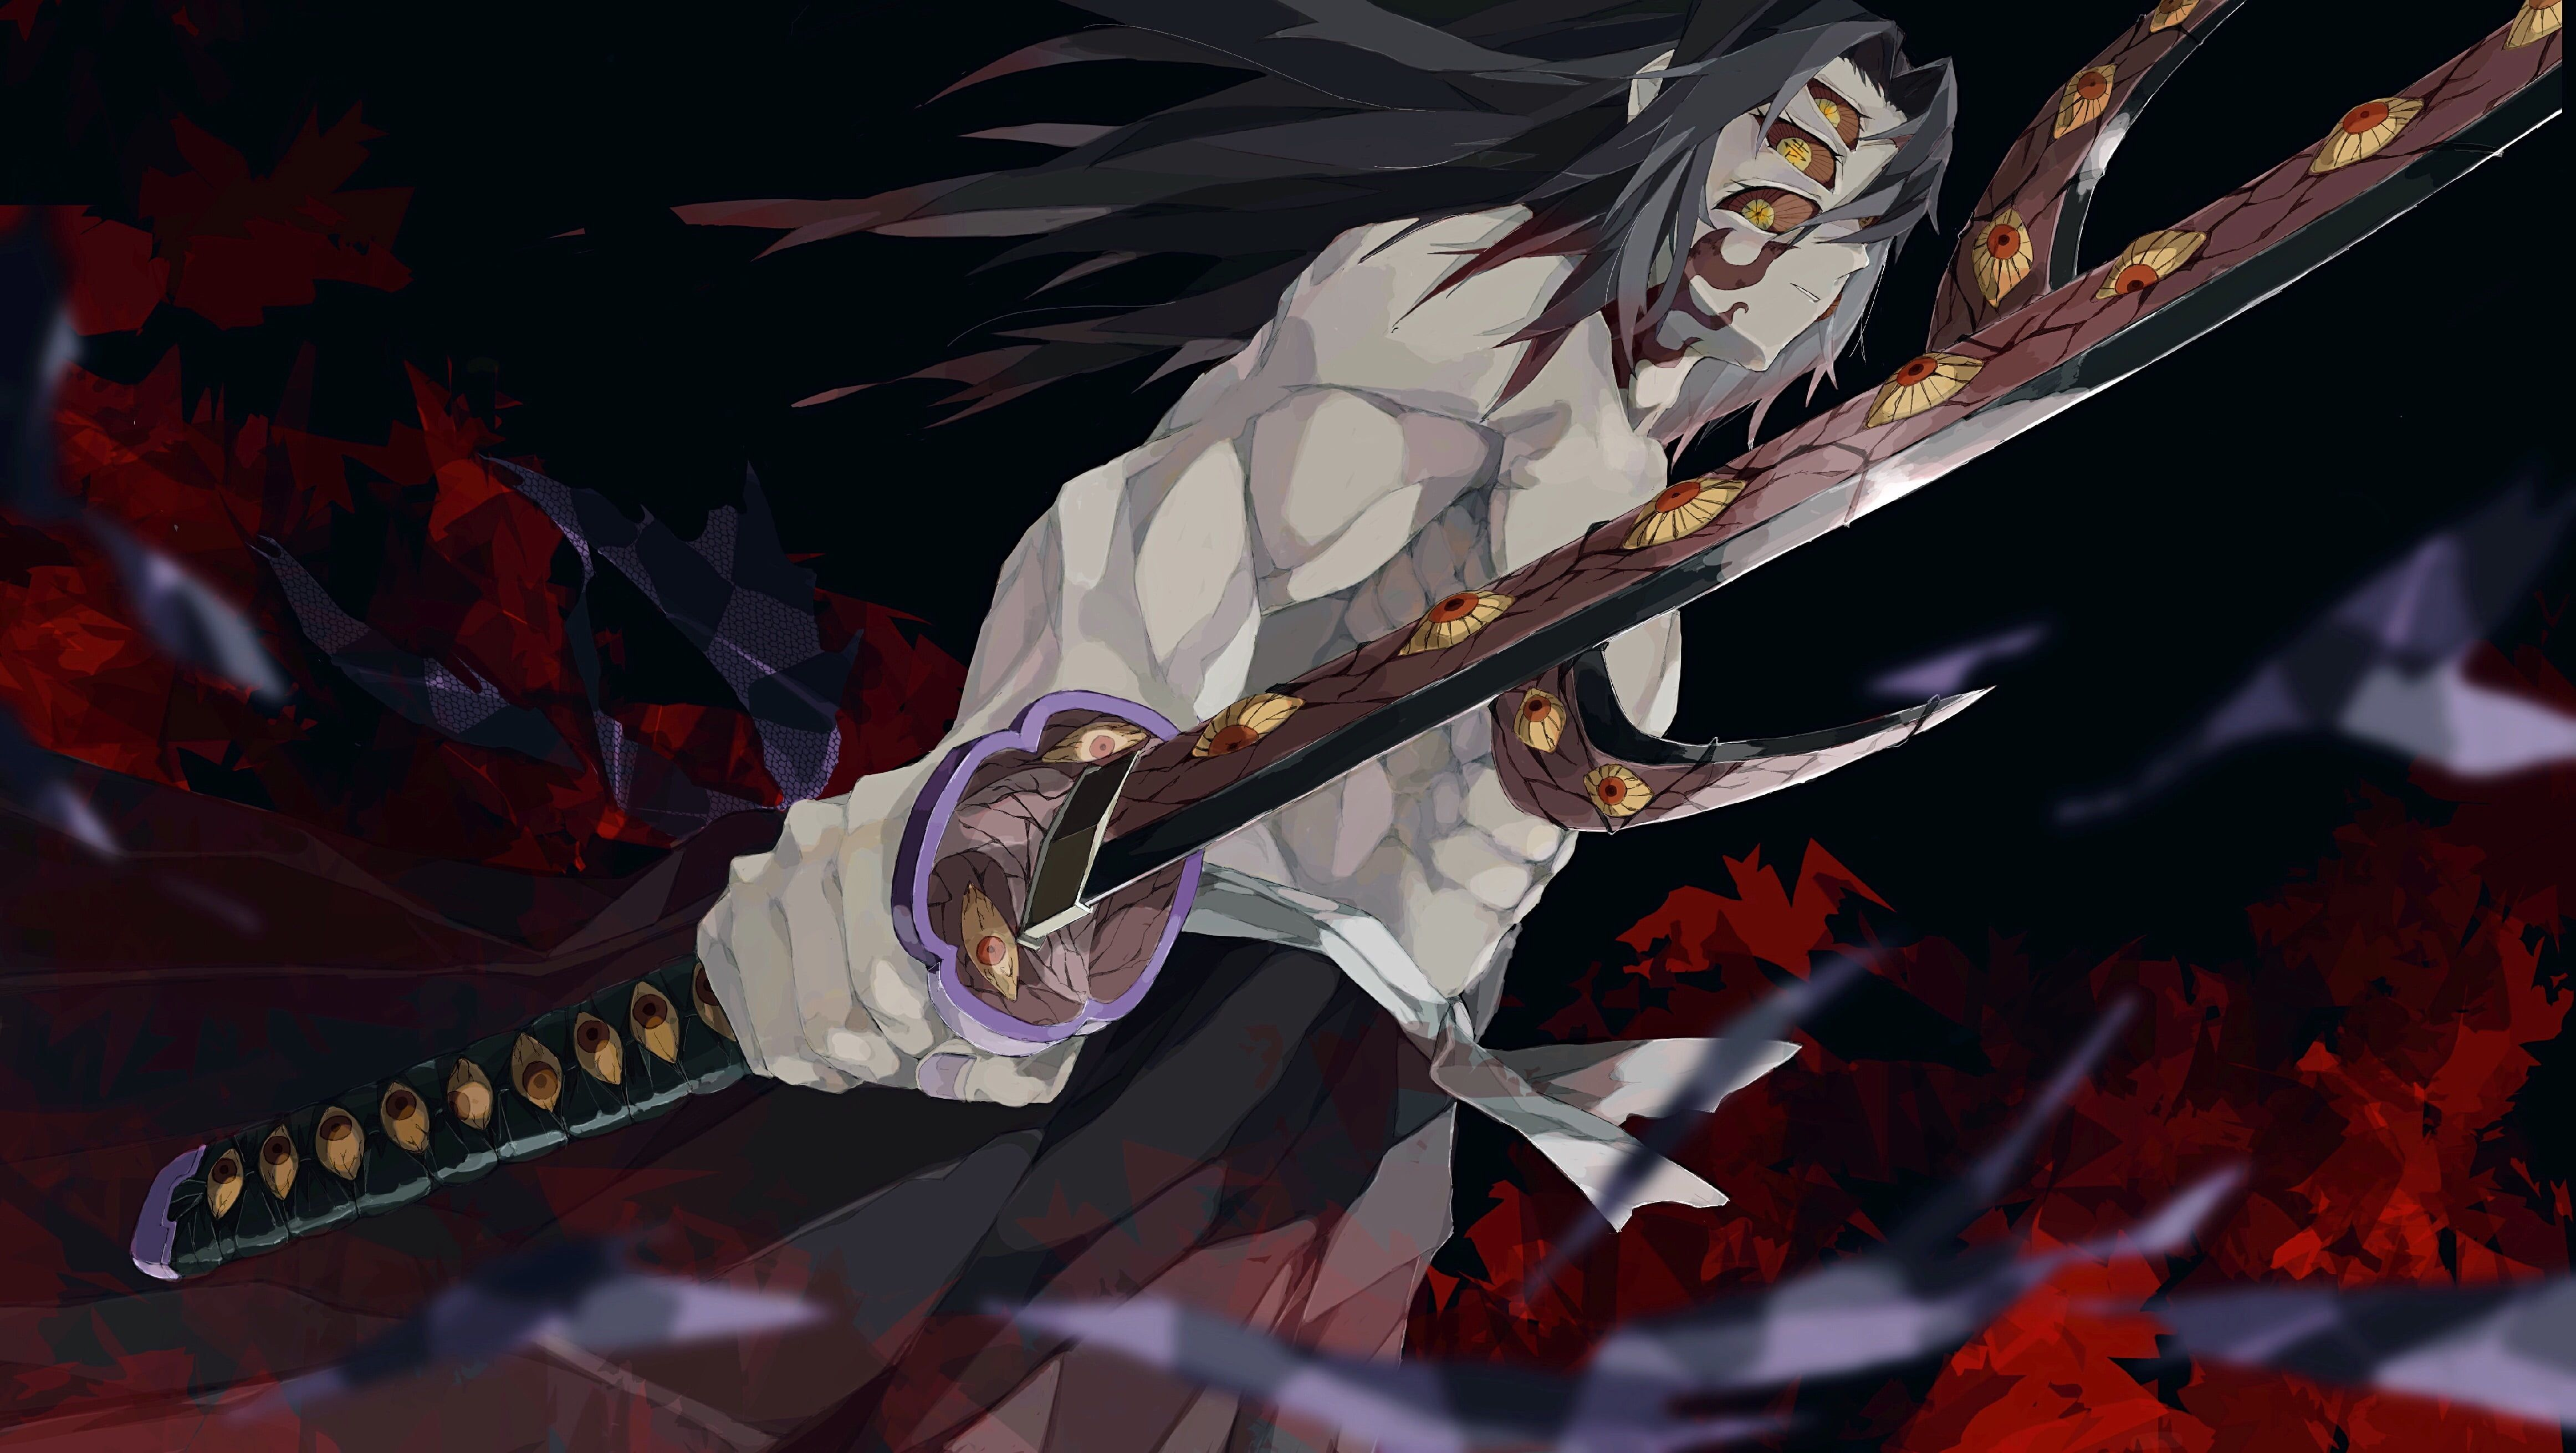 Anime Demon Slayer Kimetsu no Yaiba Kokushibou (Demon